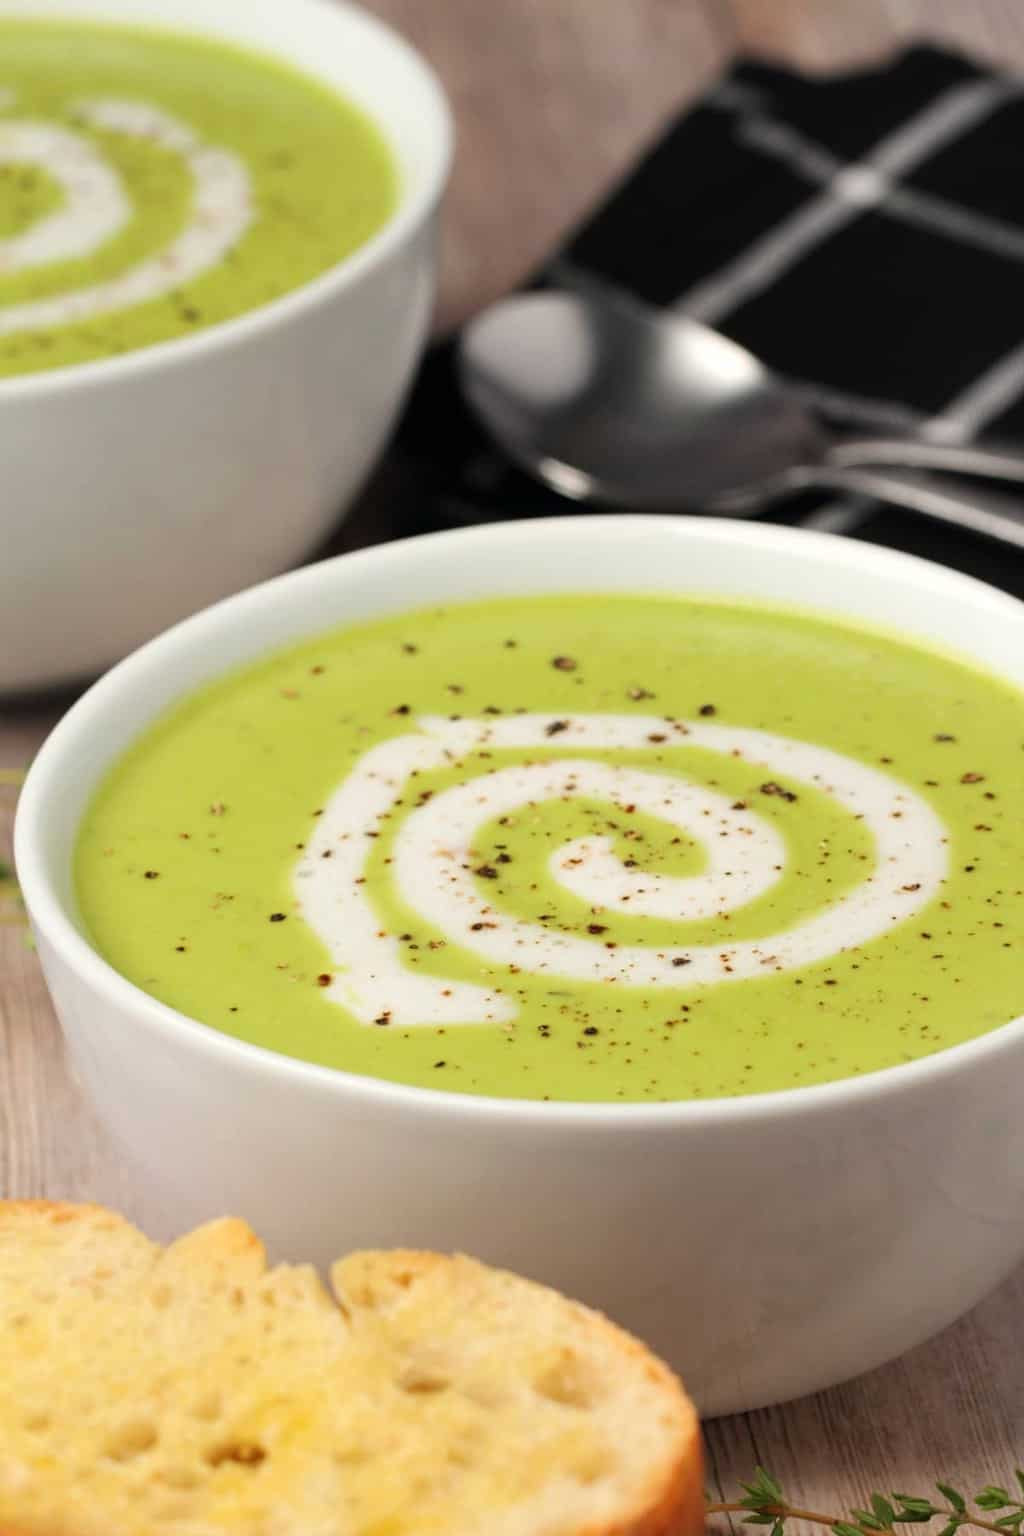 Vegan pea soup topped with a swirl of coconut cream and a sprinkle of black pepper in a white bowl.